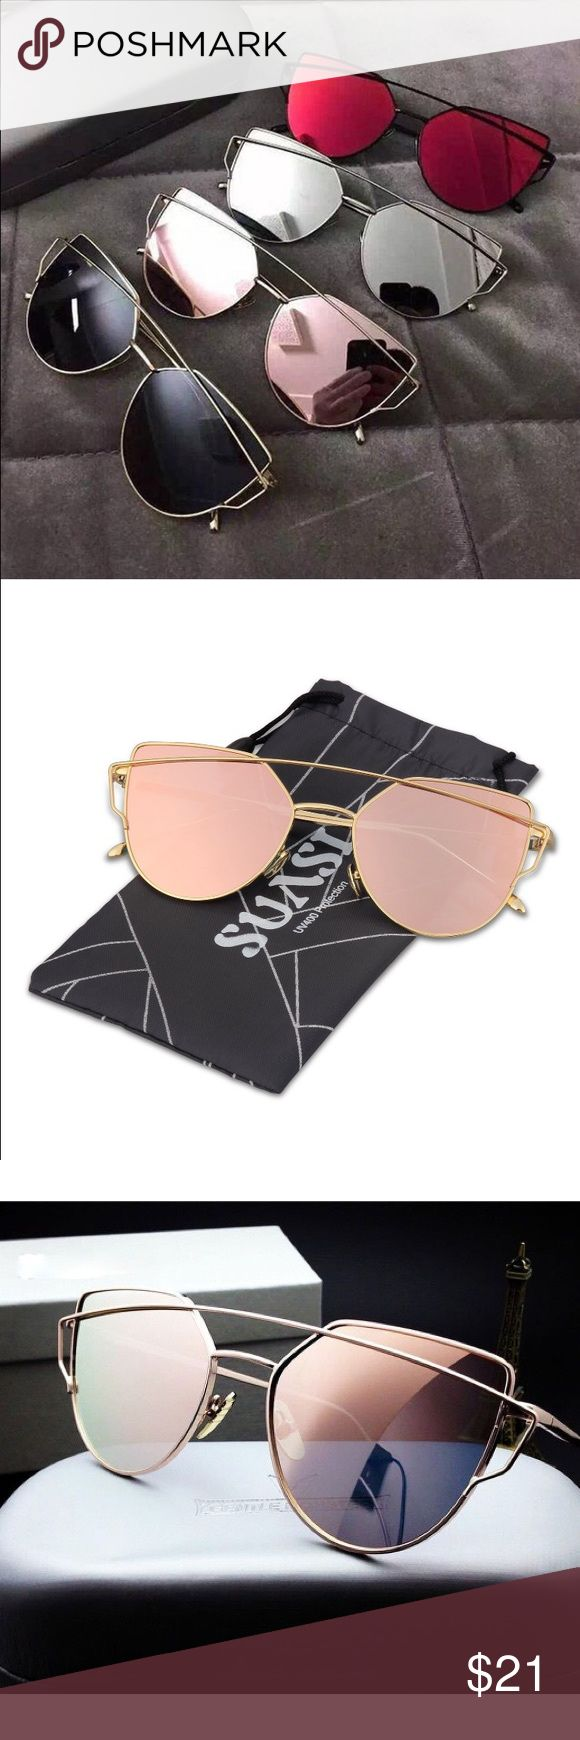 New Rose Gold Reflective Mirrored Sunglasses! Also available in my closet in the silver color! Discounted only on bundles and I don't trade  Accessories Sunglasses